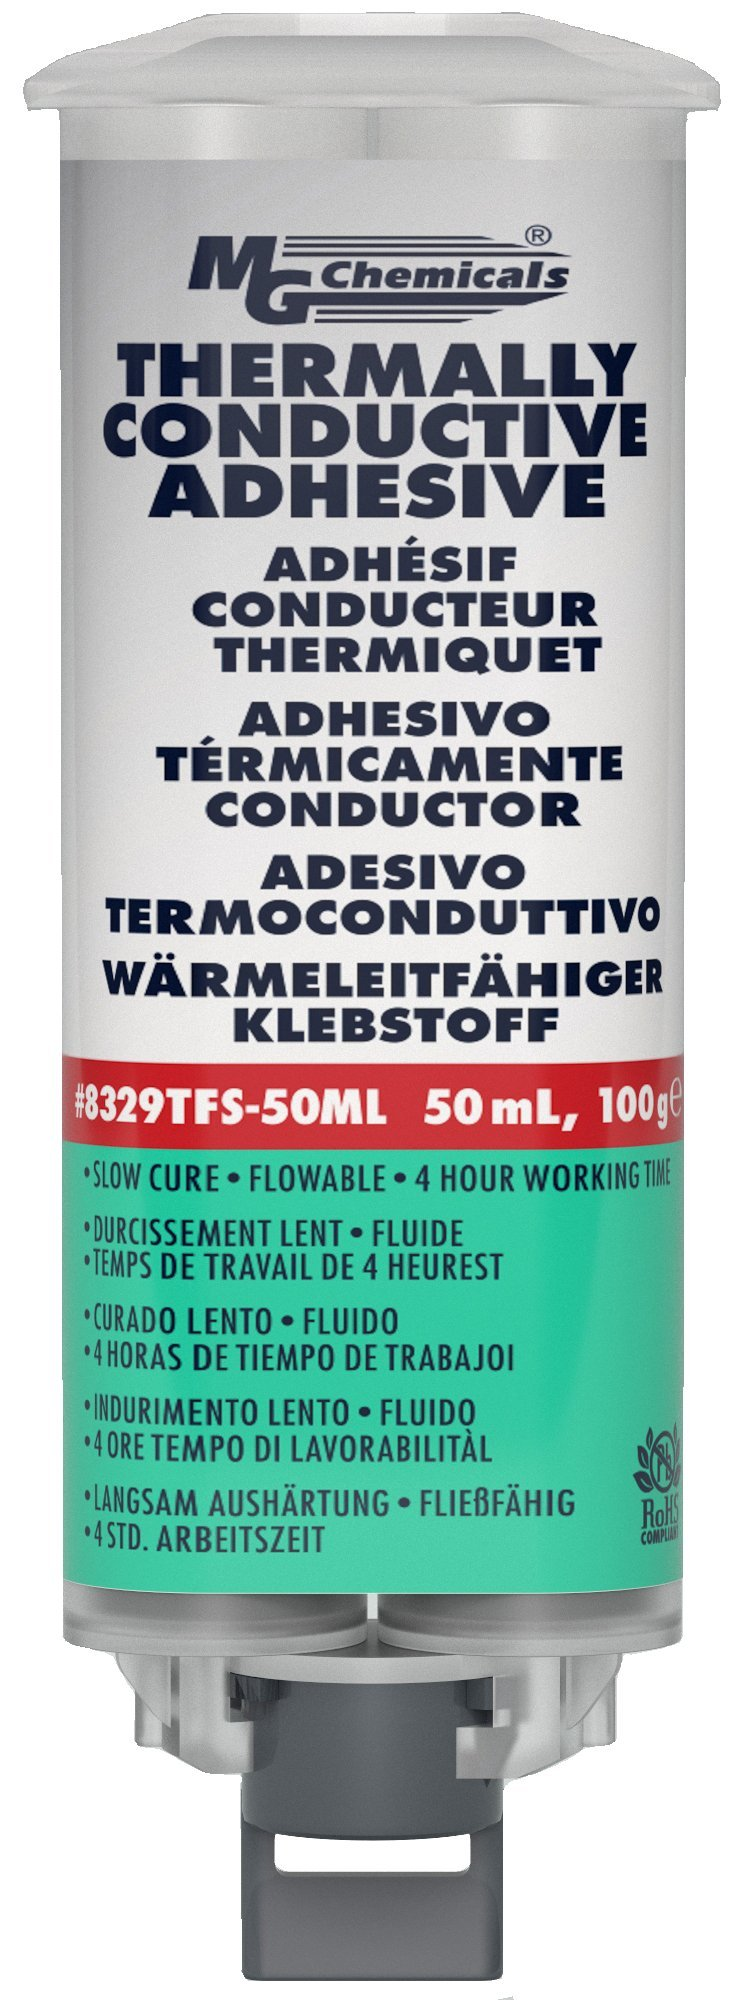 MG Chemicals 8329TFS Thermally Conductive Adhesive, Slow Cure, 45 milliliters Dual Pneumatic Dispenser